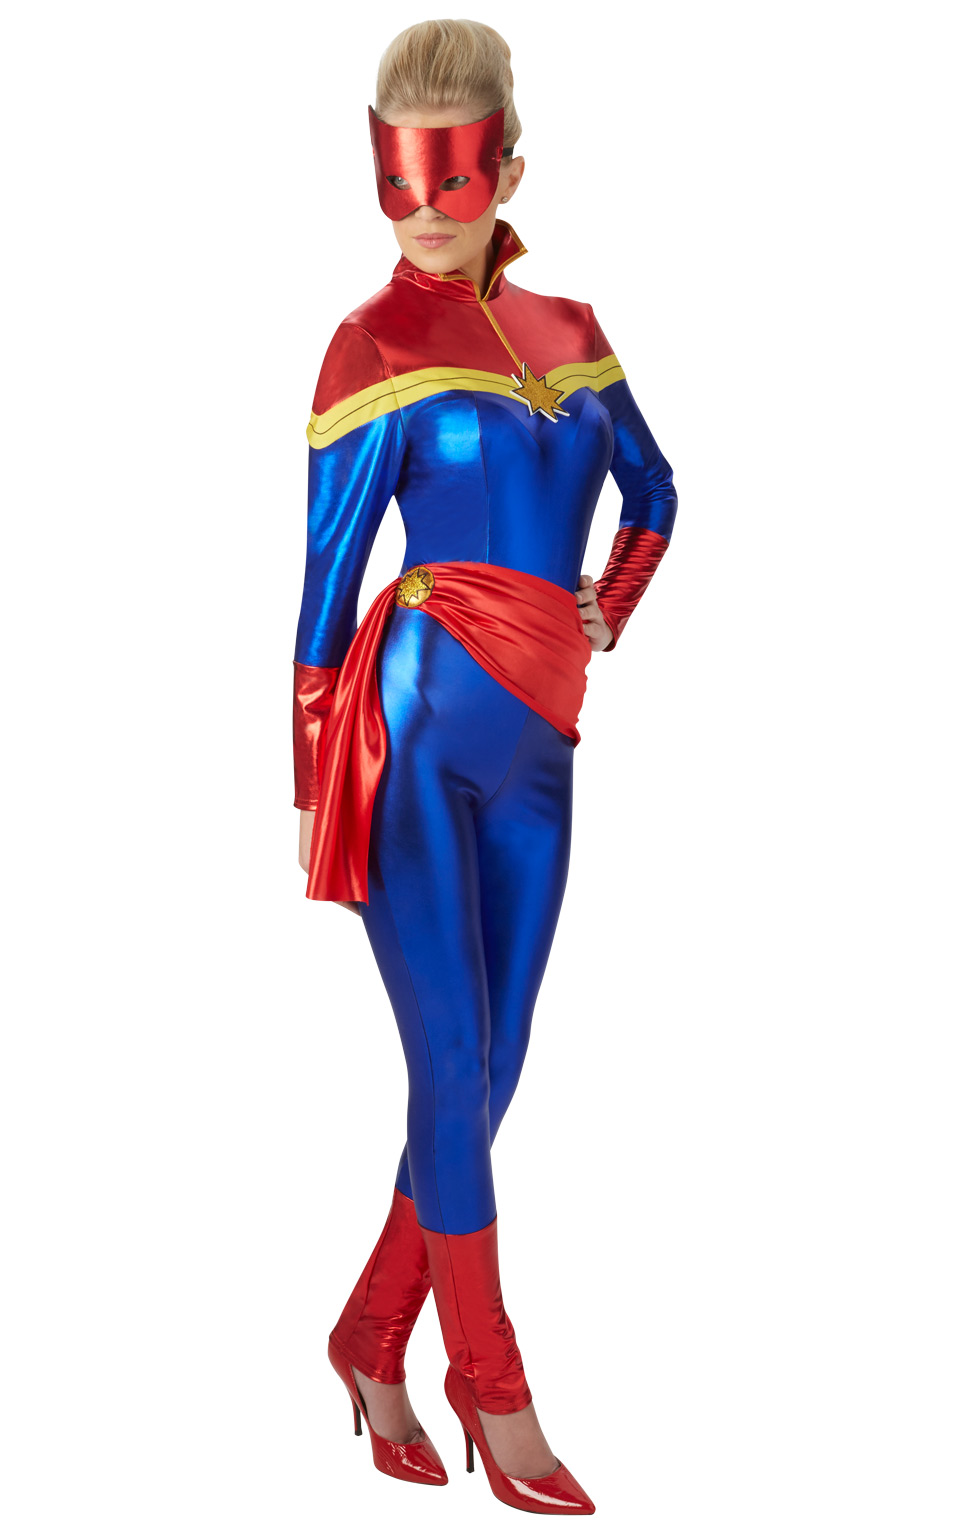 Captain Marvel Costume Adult Captain Marvel Pageant Party Get your courageous youngster ready for epic adventures as one of the universe's most powerful heroes in this awesome costume inspired by the forthcoming blockbuster, marvel's captain you may experience issues while visiting marvel shop with your current web browser version/configuration. captain marvel costume